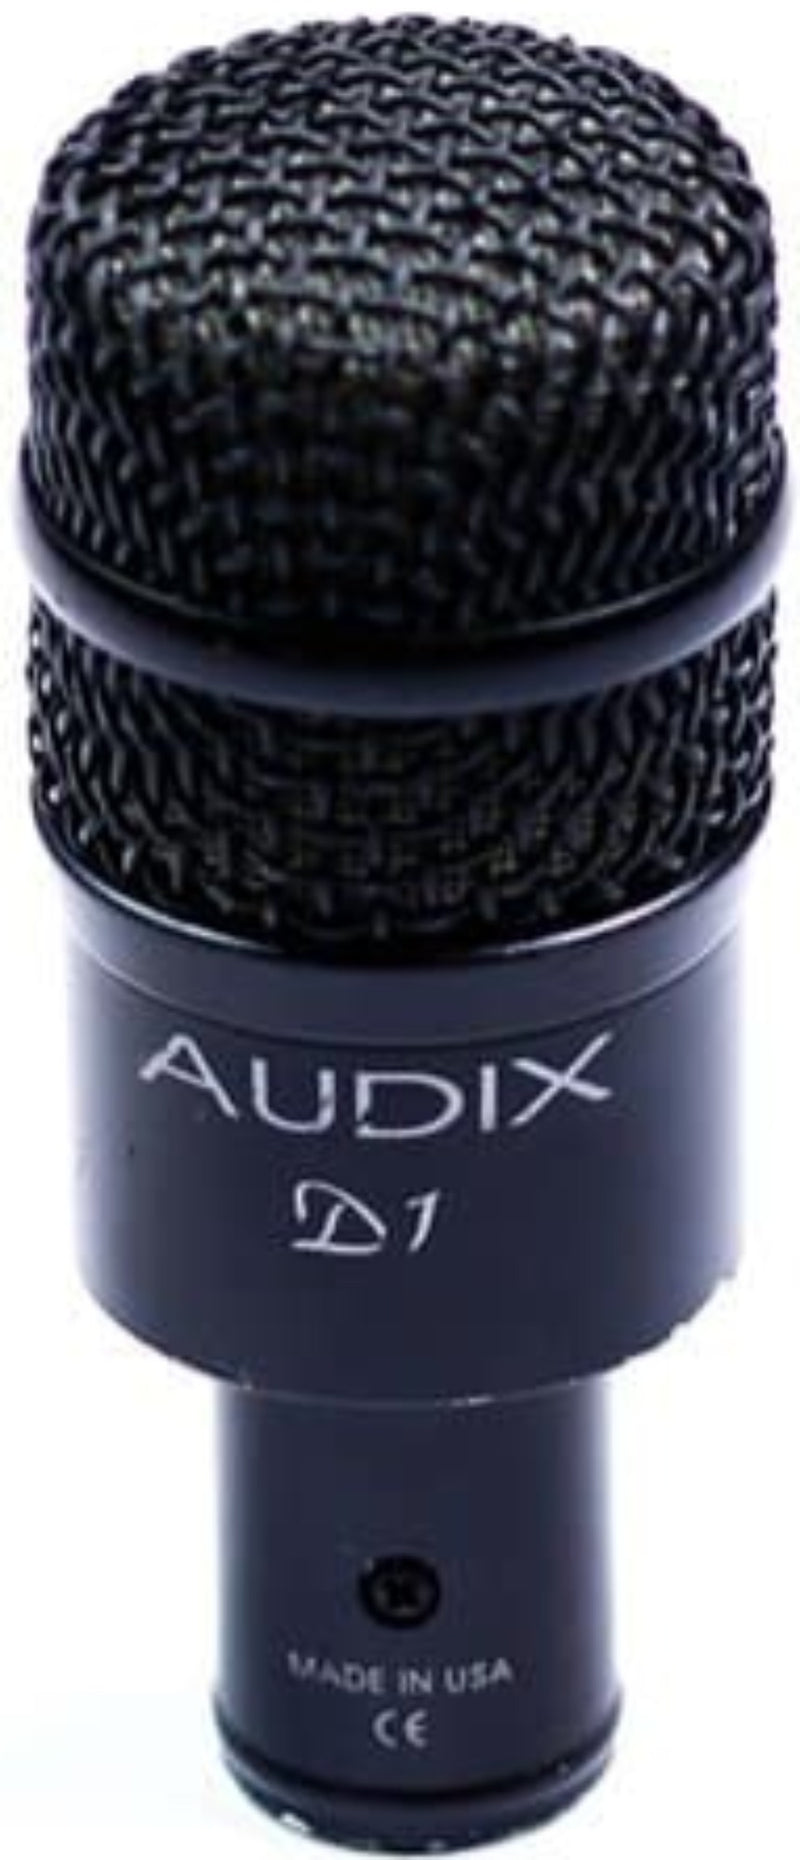 Audix D1 Hypercardioid Dynamic Microphone - ProSound and Stage Lighting